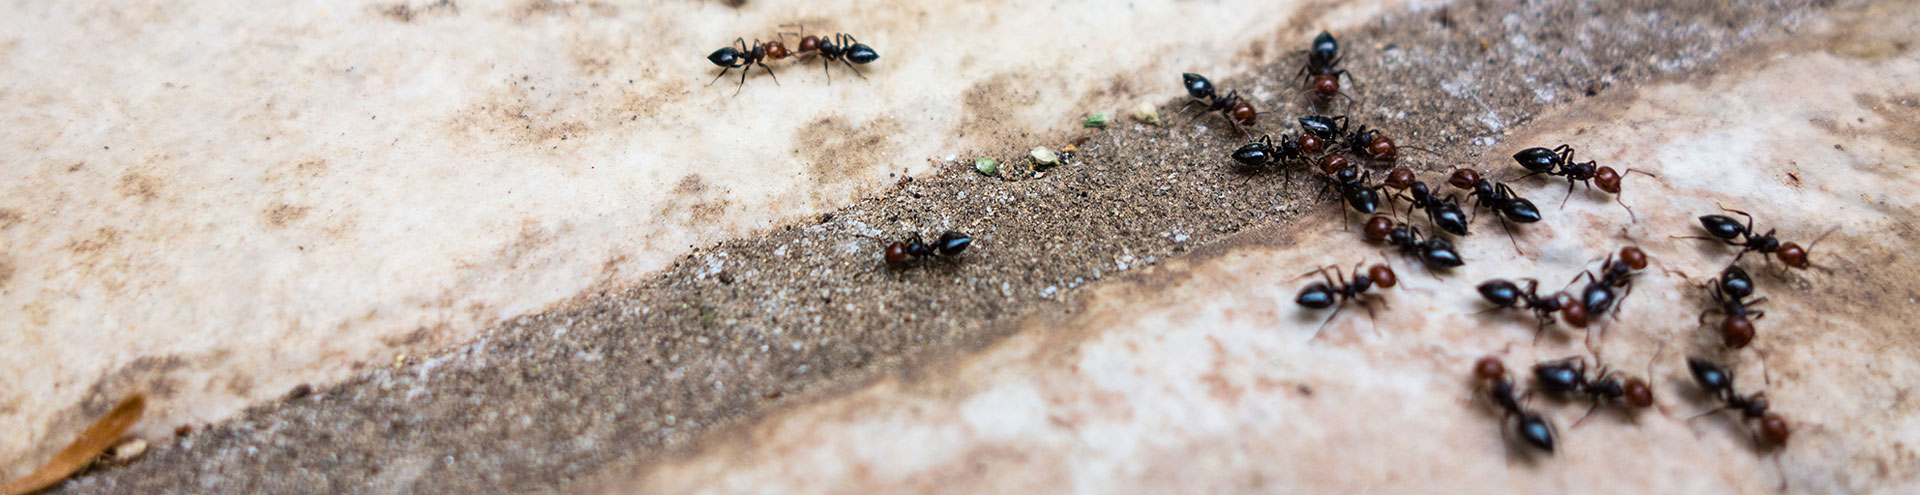 A group of common ants on a concrete sidewalk.